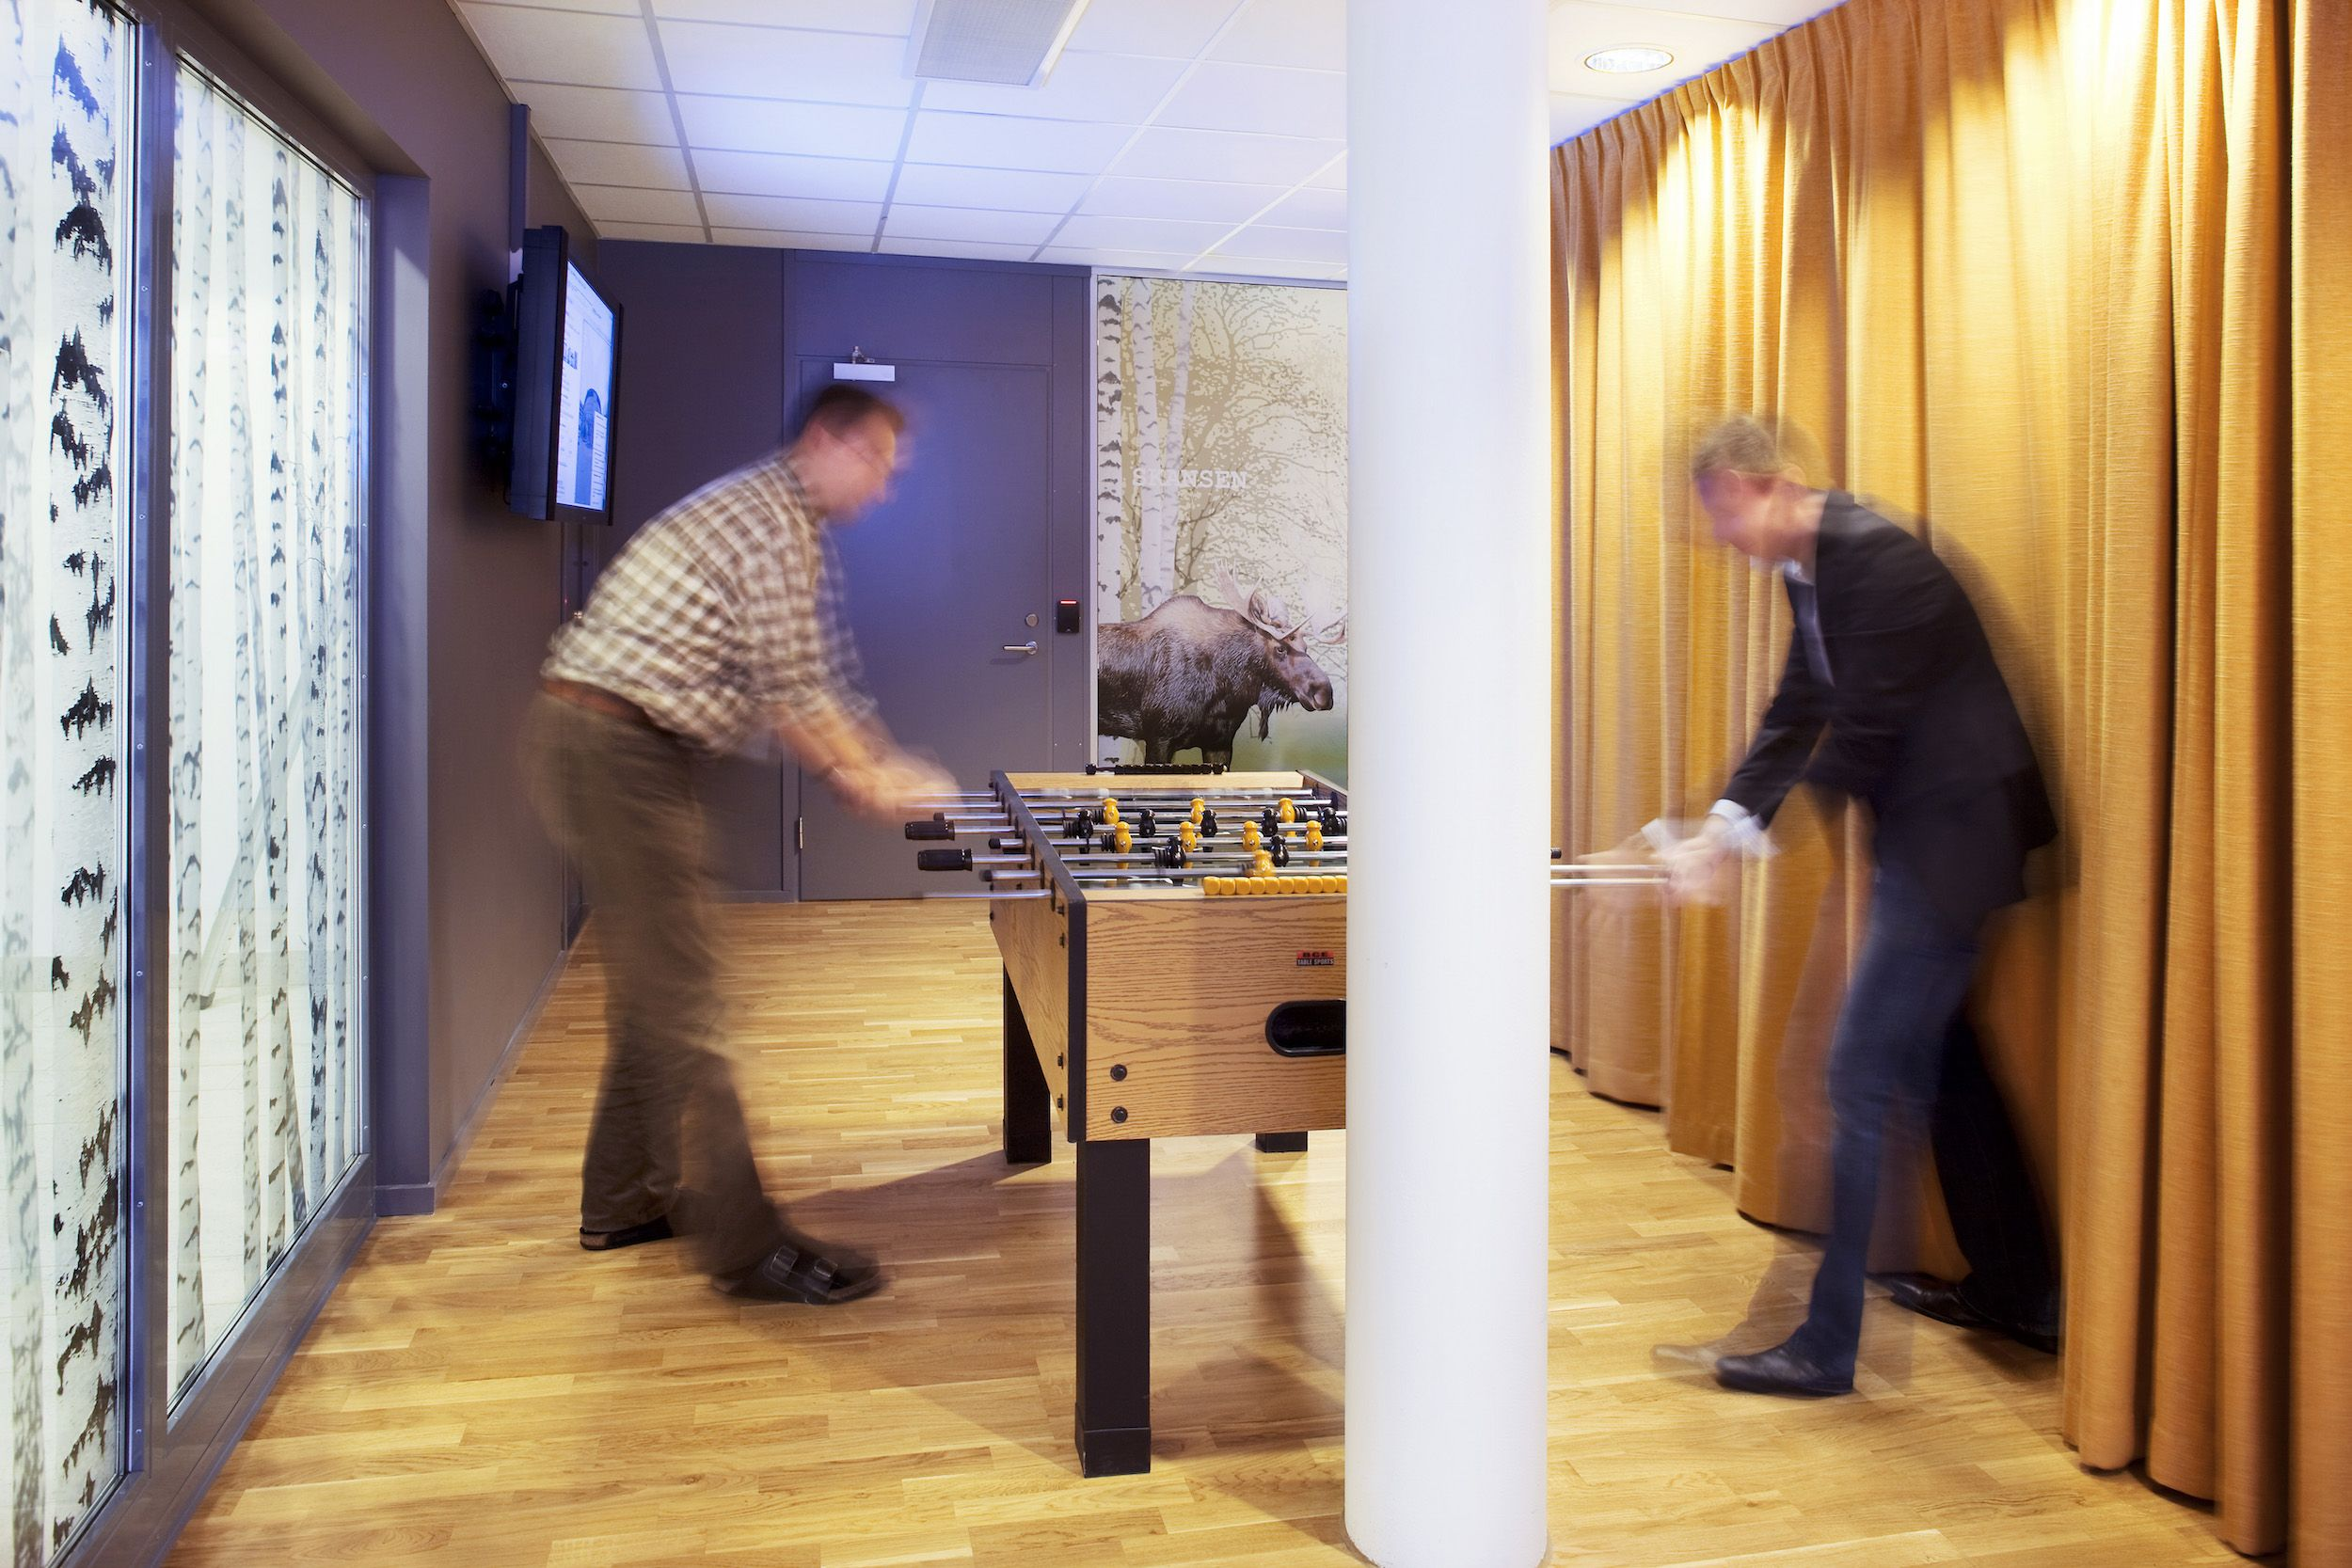 offices google office stockholm. Google Office Stockholm | Reception Area With Games #GoogleStockholm, # Office, #Games Offices A